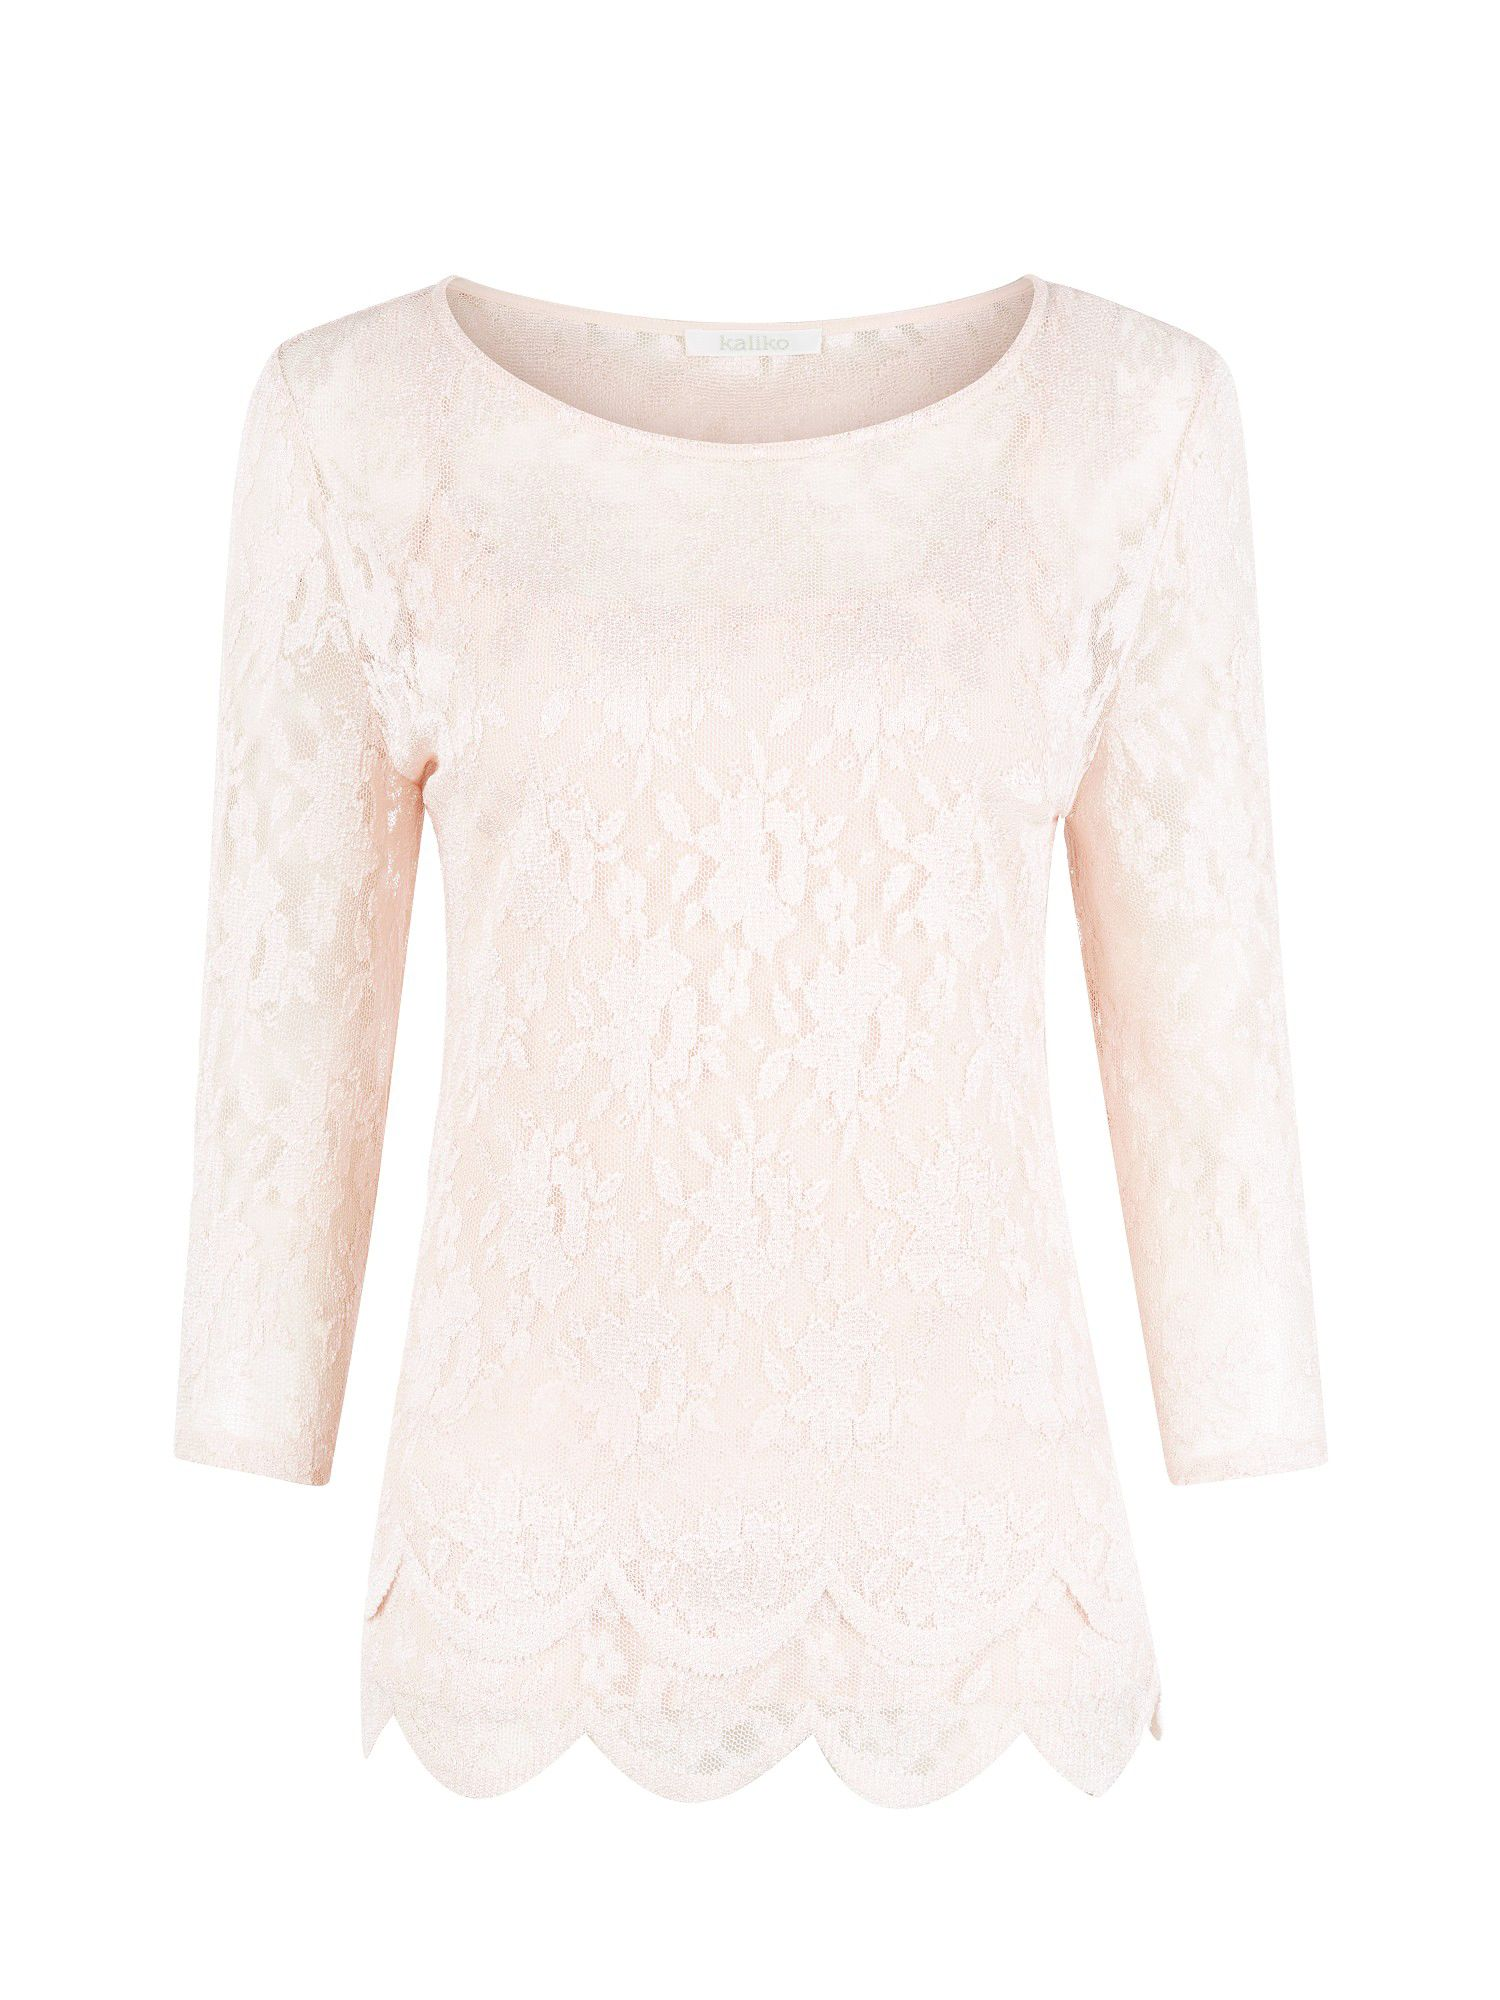 Rosewater lace stretch top